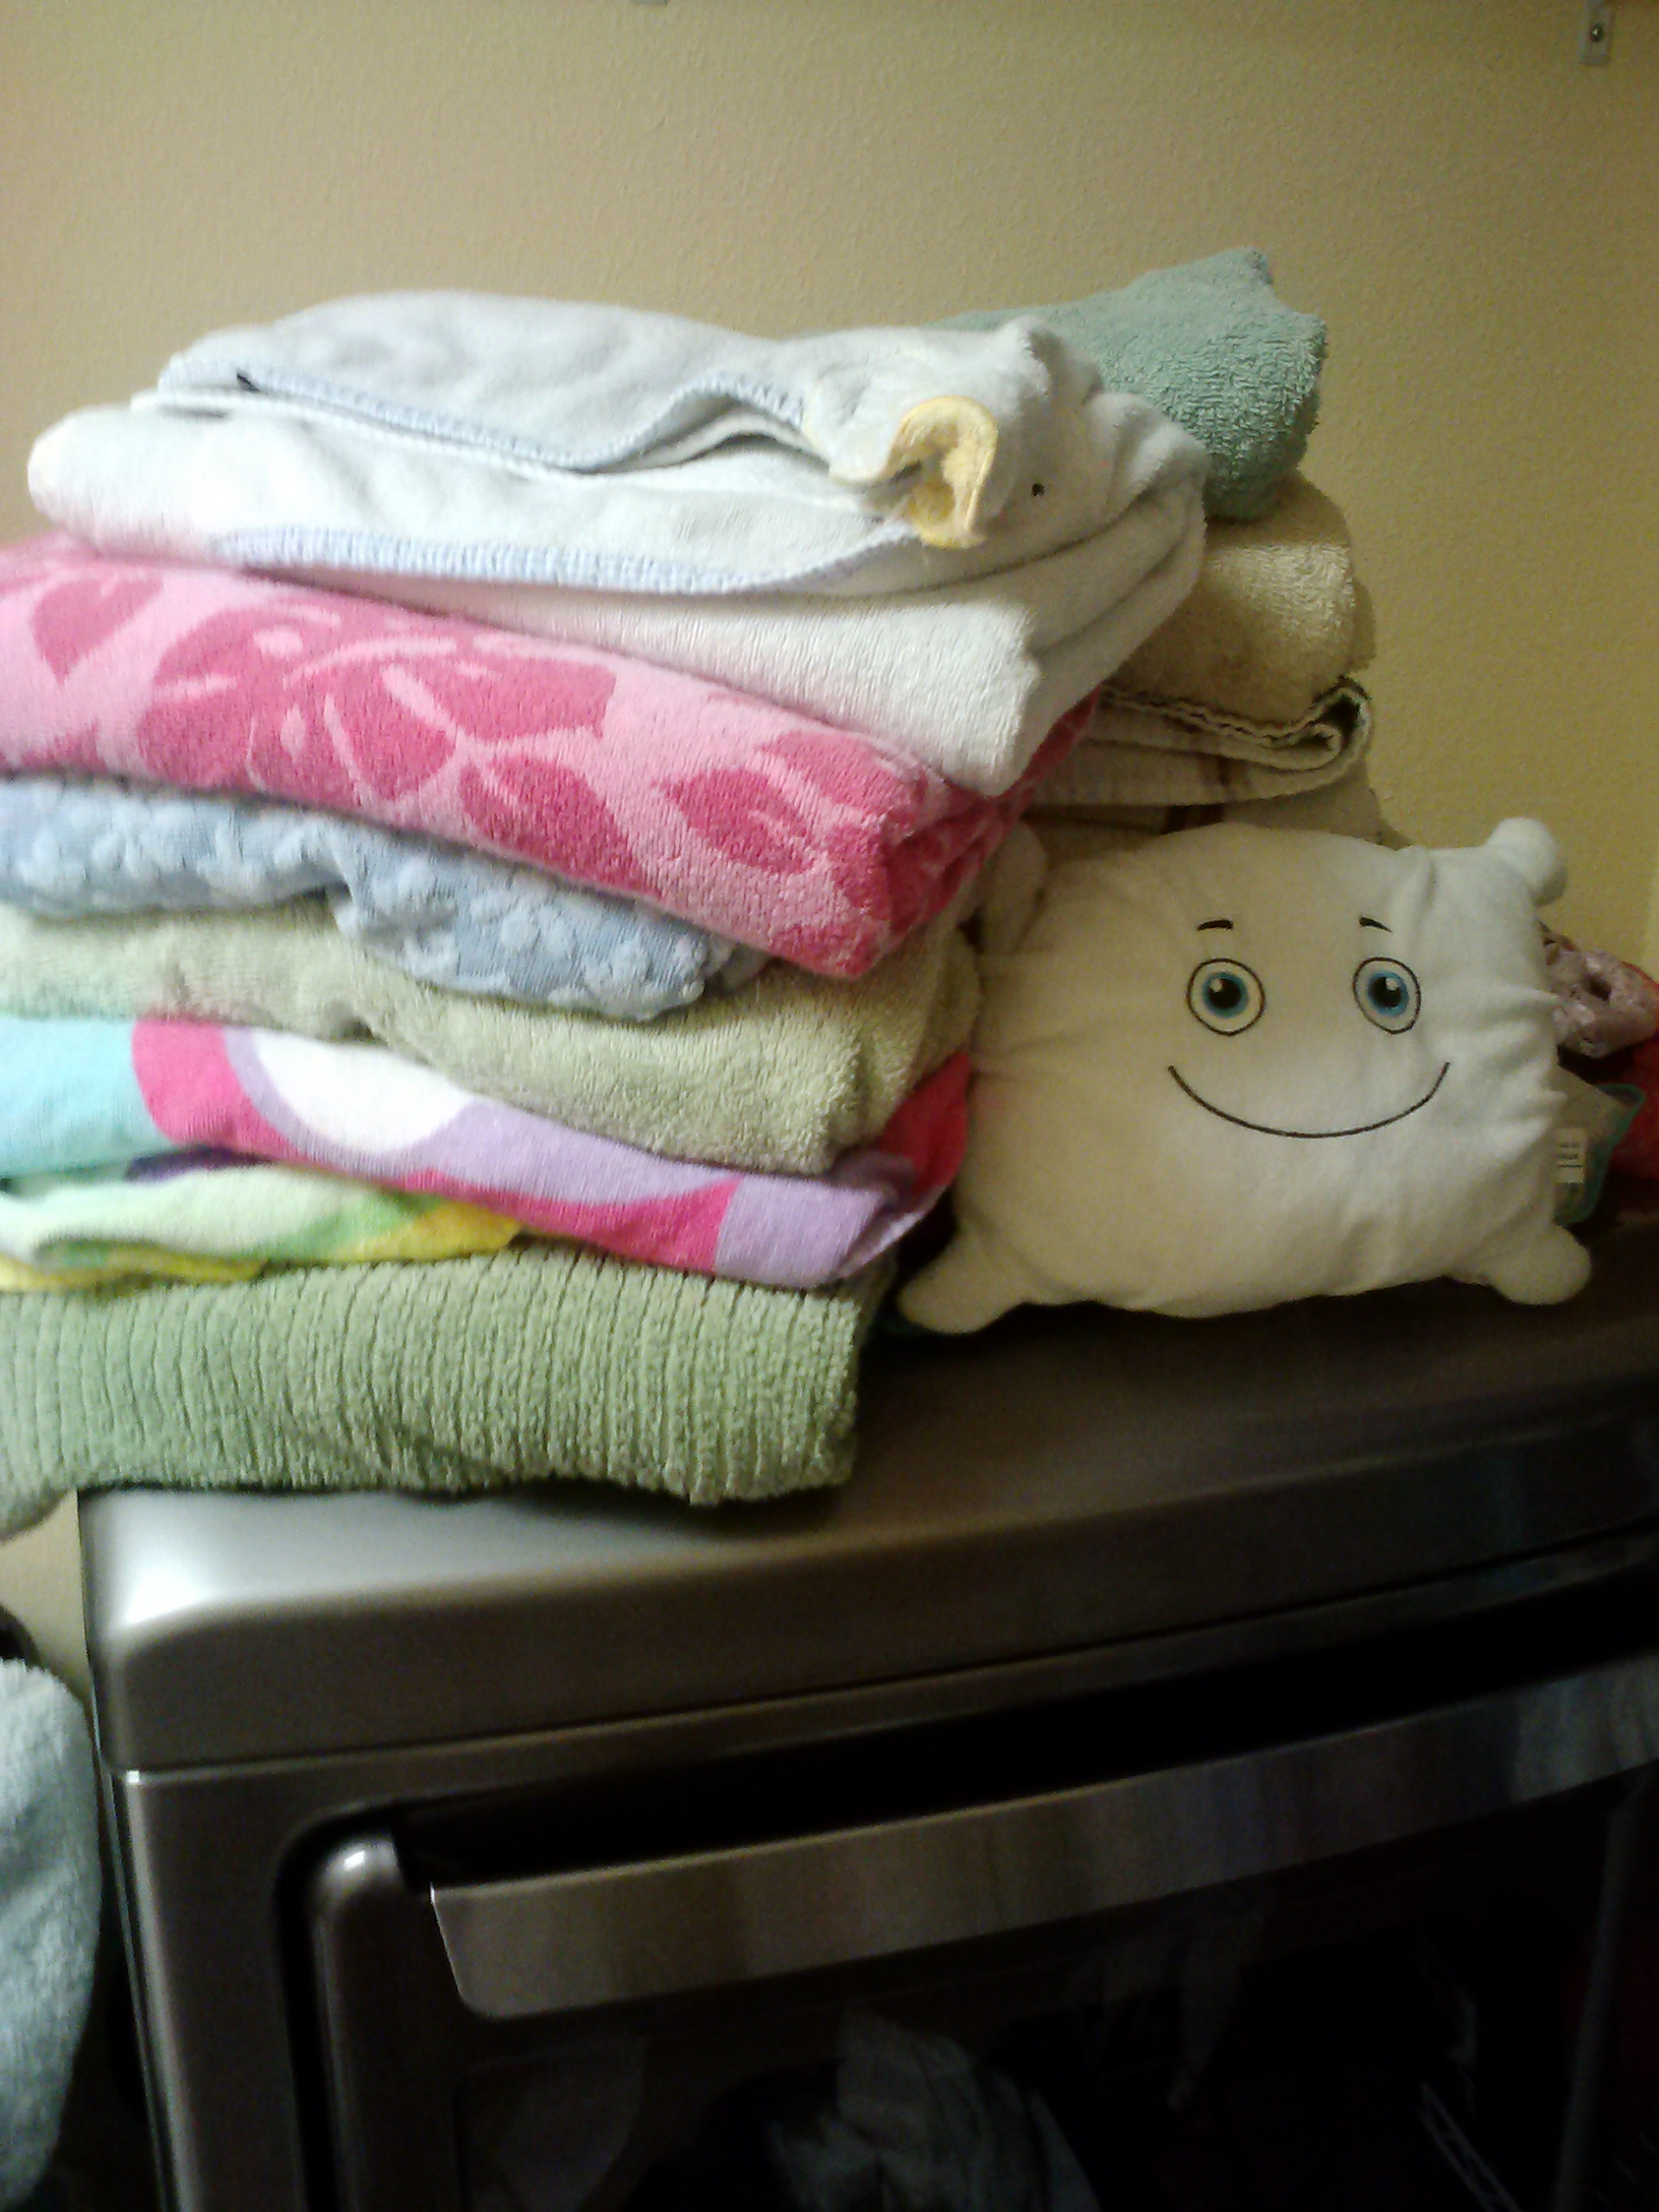 McStuffy is helping daddy fold towels